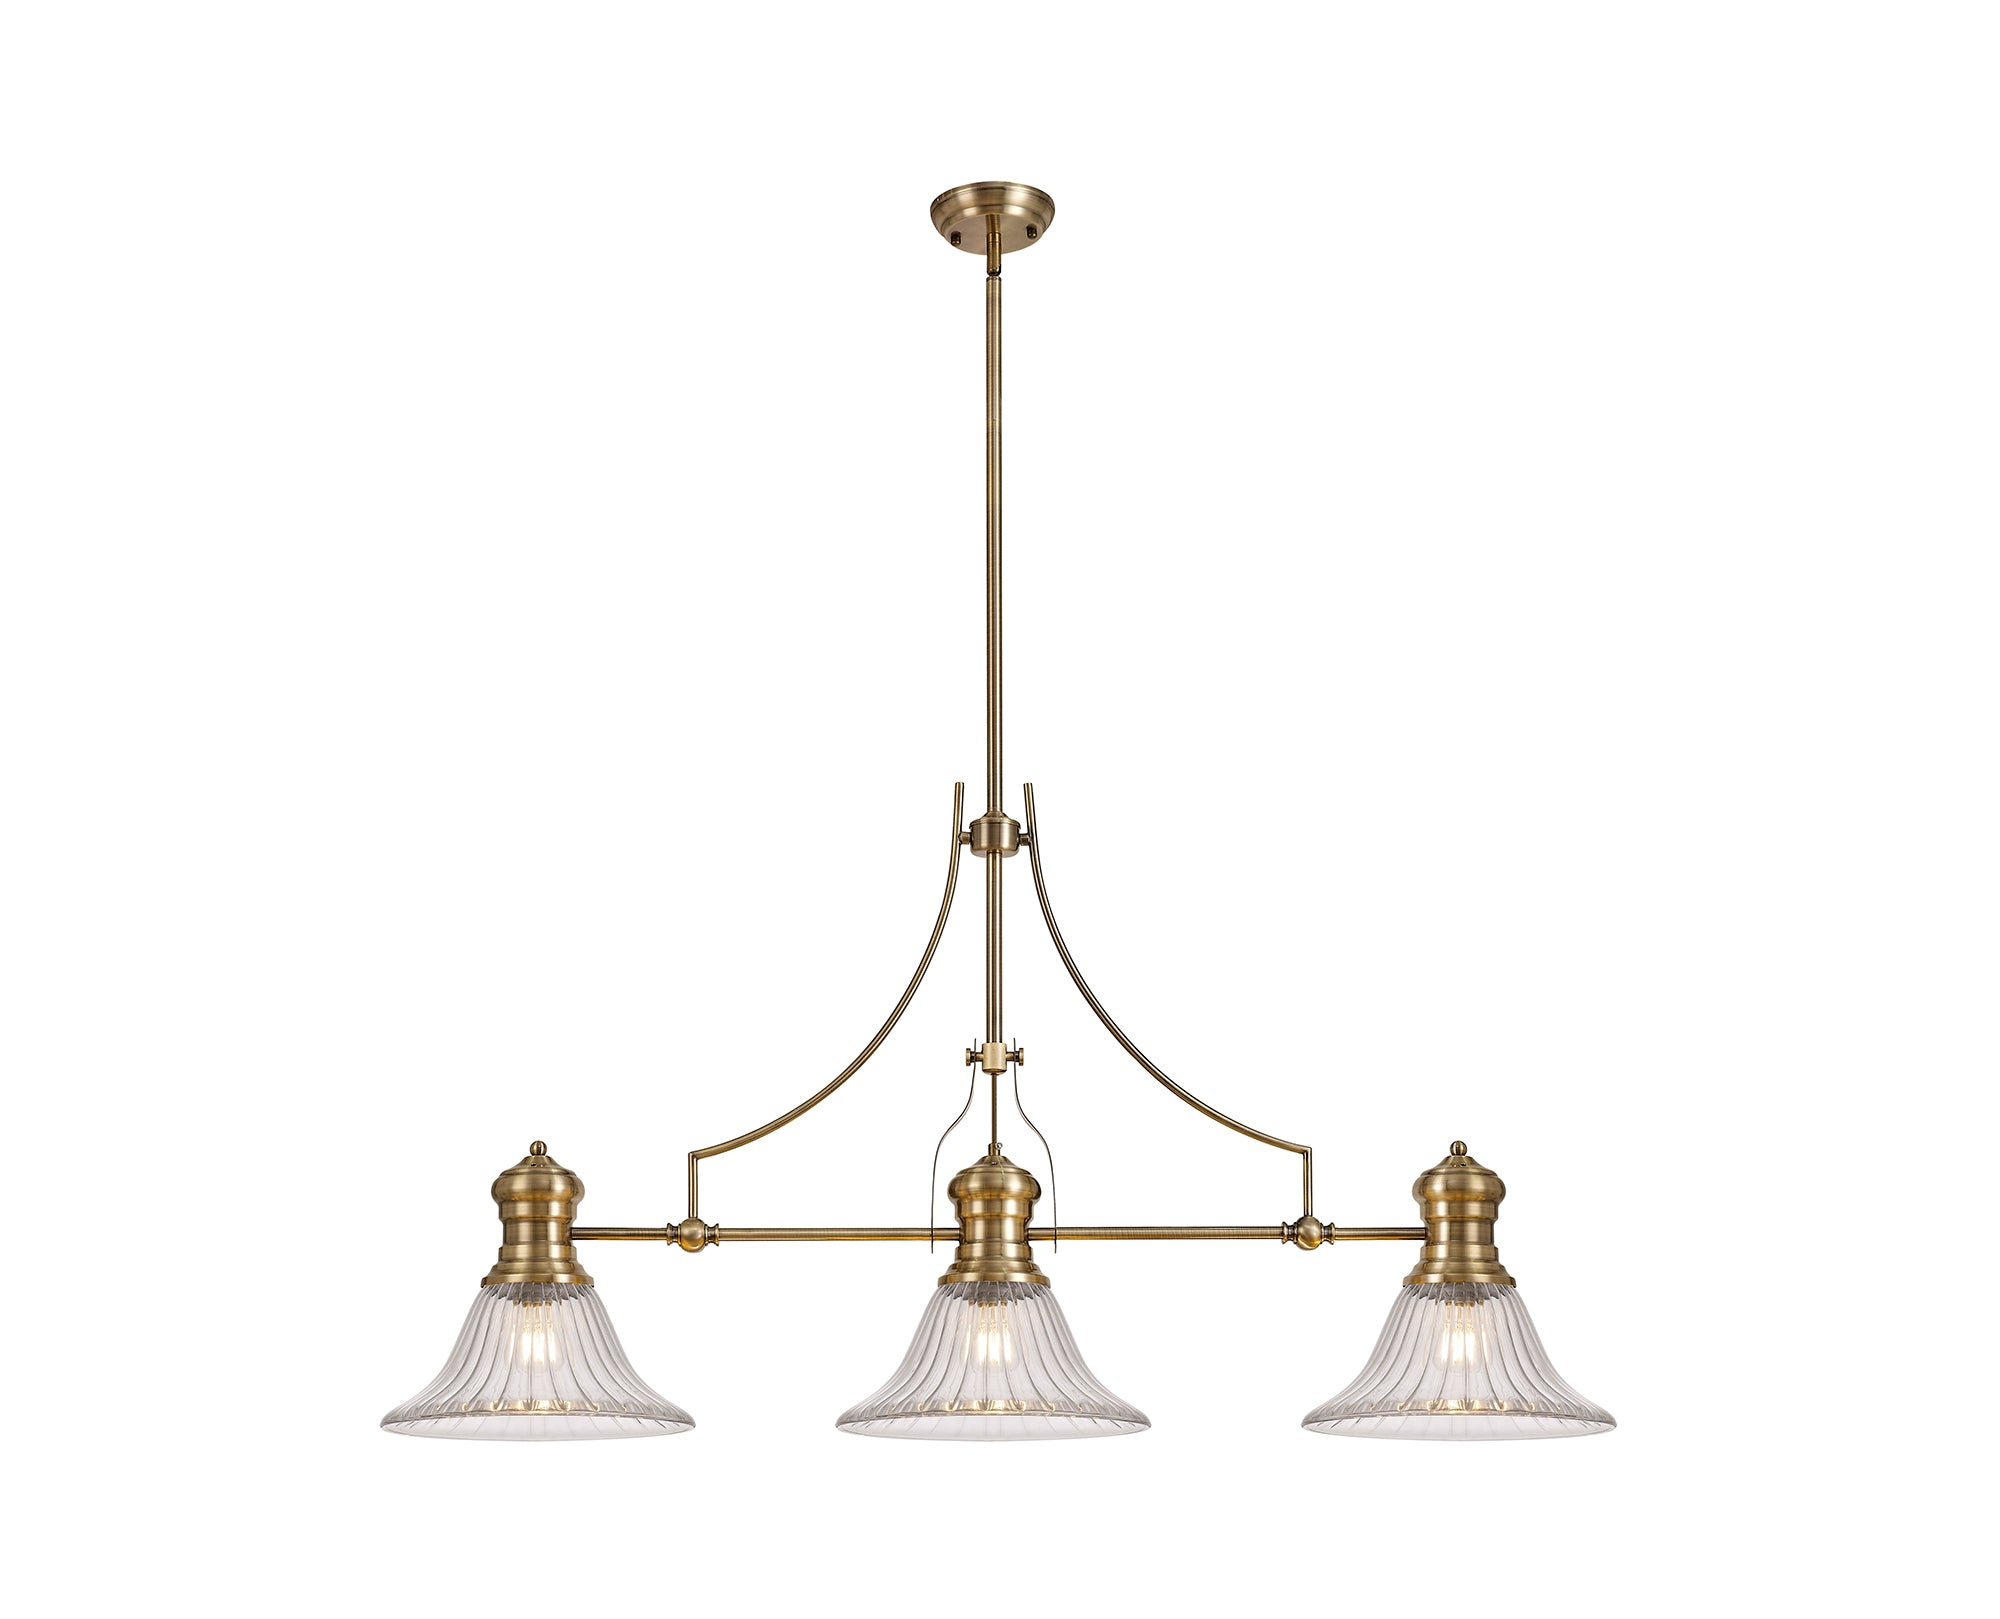 WAREHOUSE 3 Light Telescopic Pendant E27 With 30cm Bell Glass Shade, Antique Brass/Clear